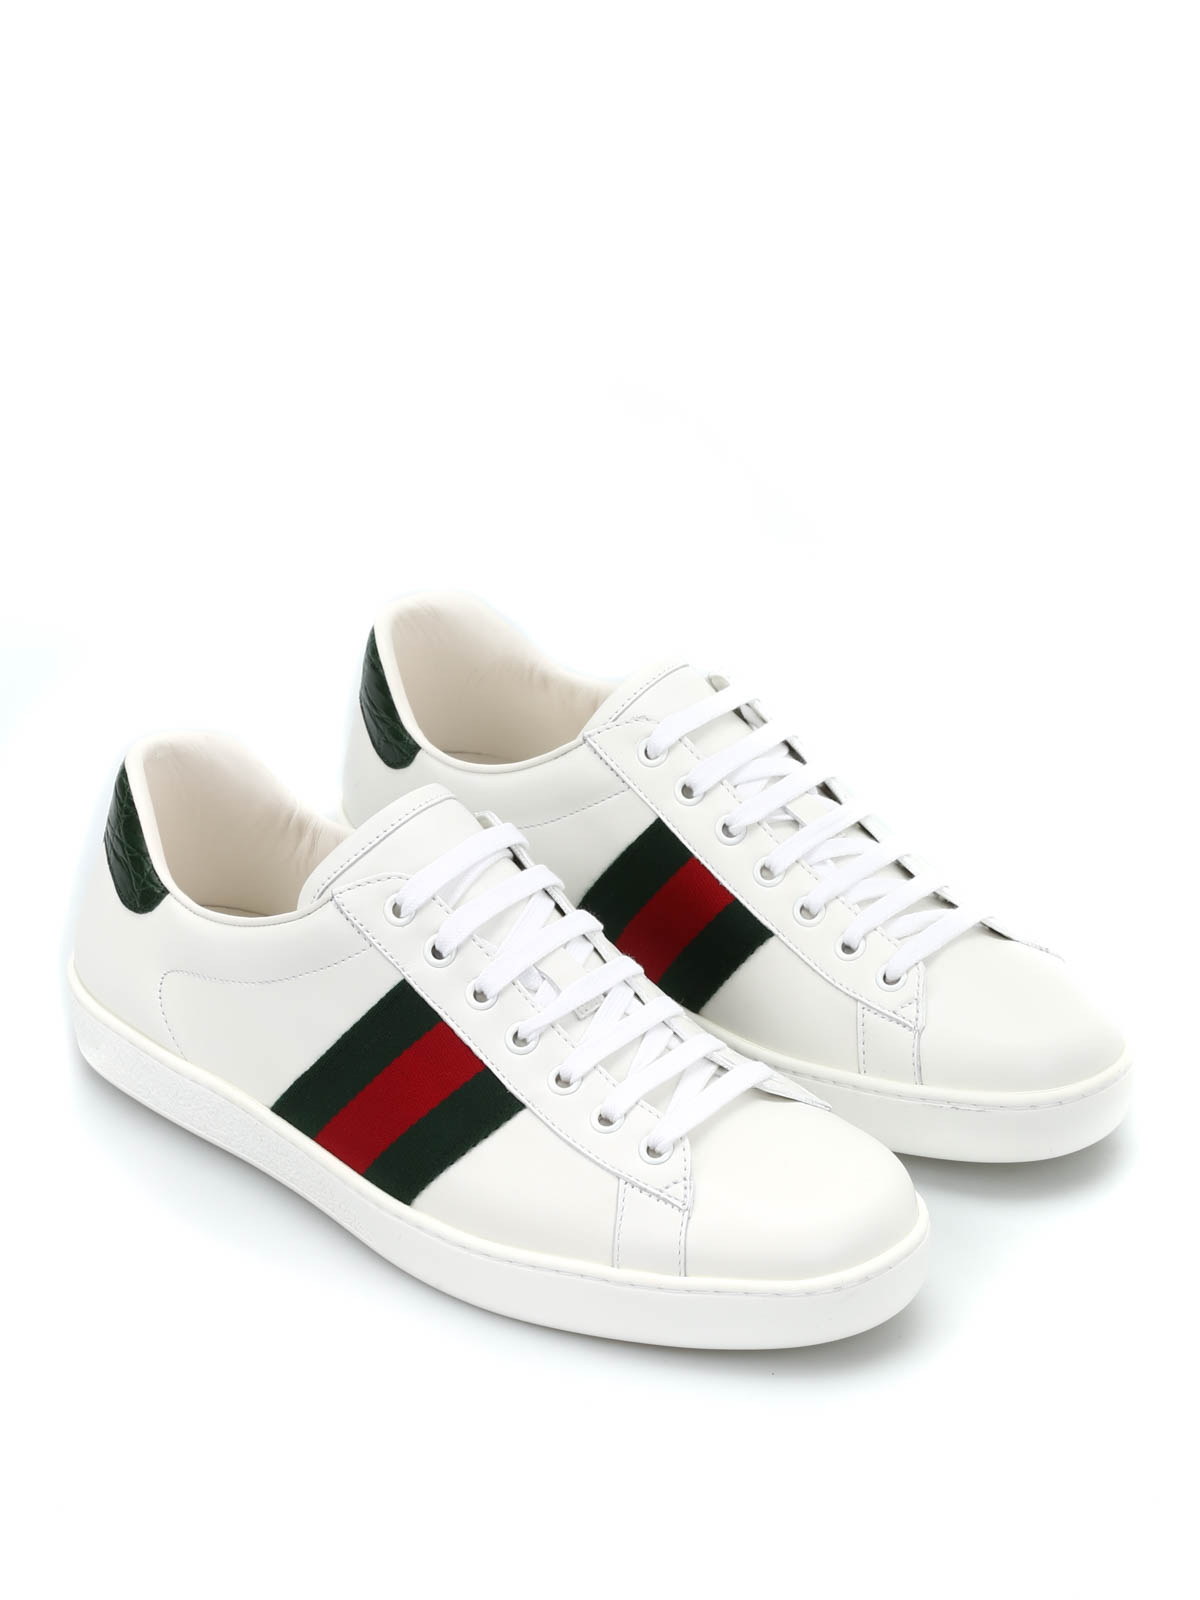 gucci leather sneakers with web detail trainers 386750 a3830 9071. Black Bedroom Furniture Sets. Home Design Ideas